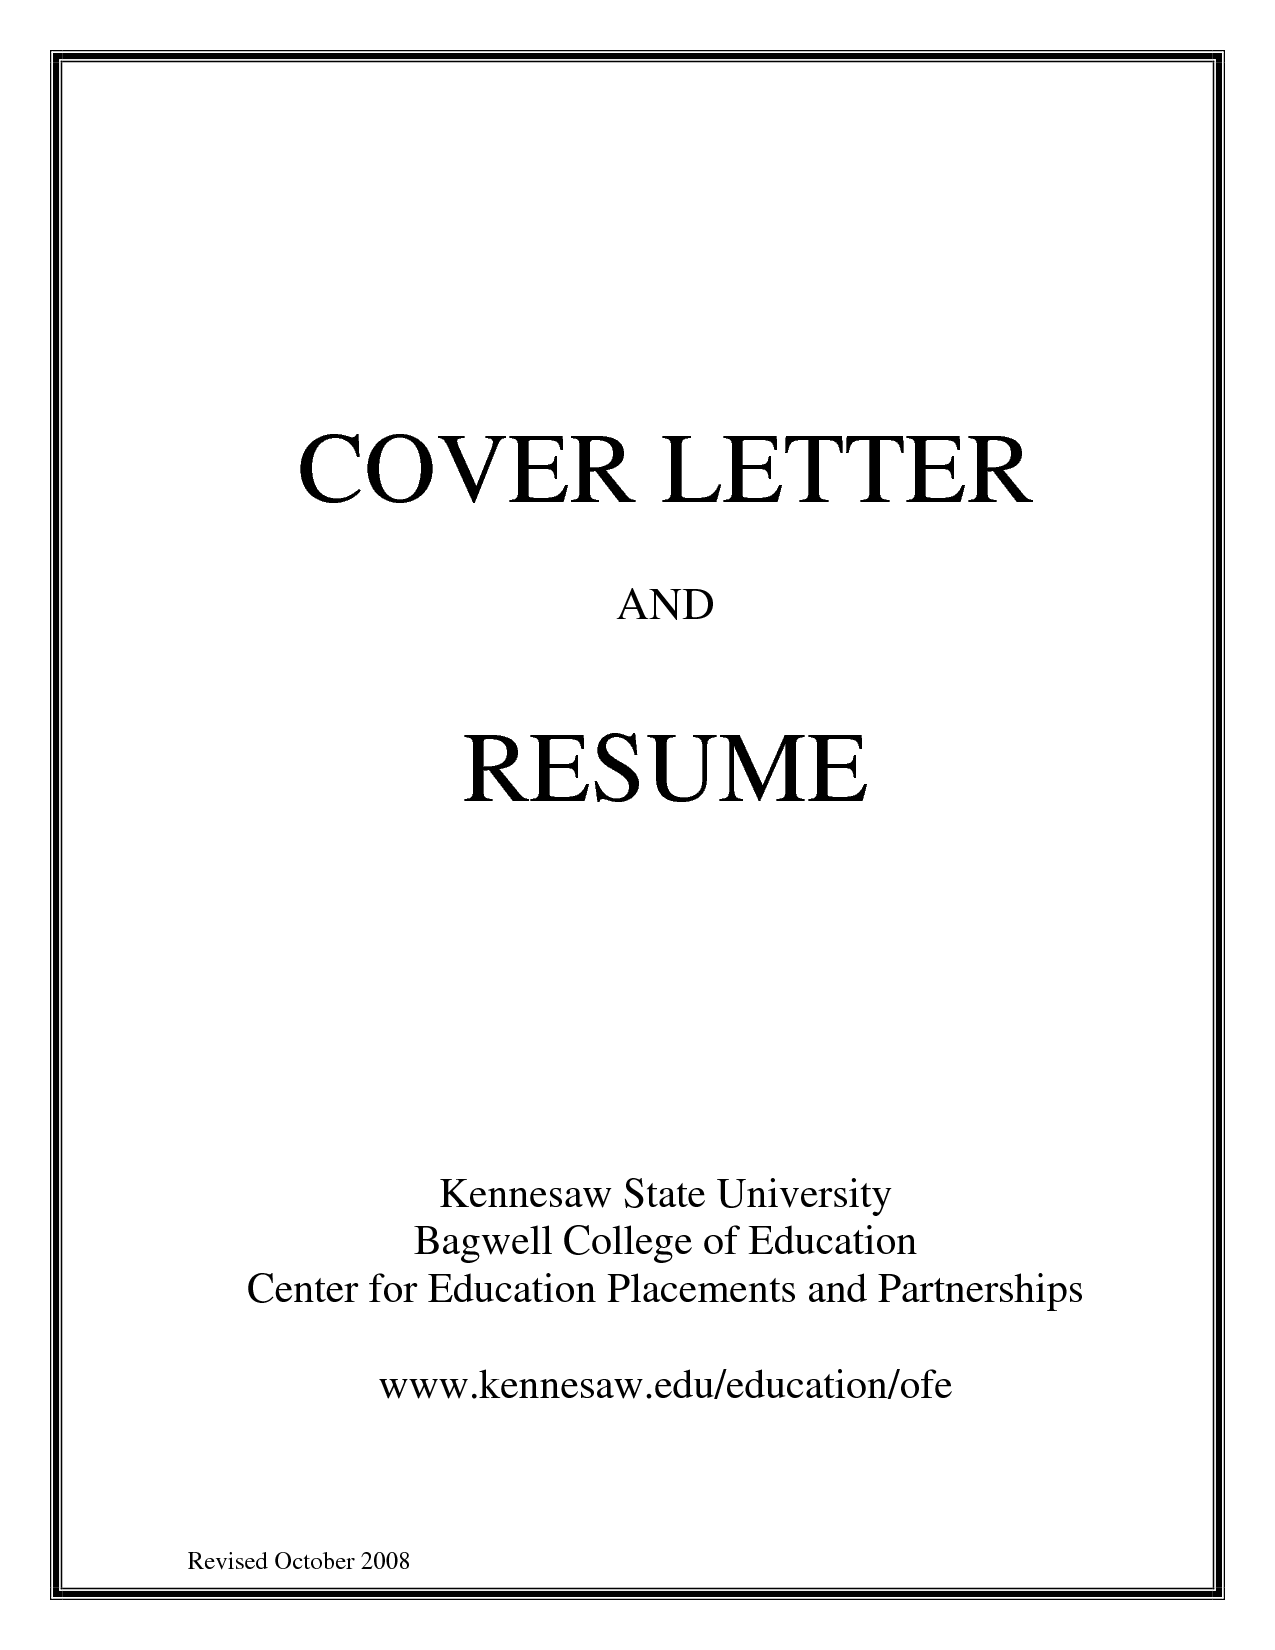 Thank you business letters cover letter formatbusiness letters thank you business letters cover letter formatbusiness letters business letter sample inspired construction pinterest business letter and interiors madrichimfo Images